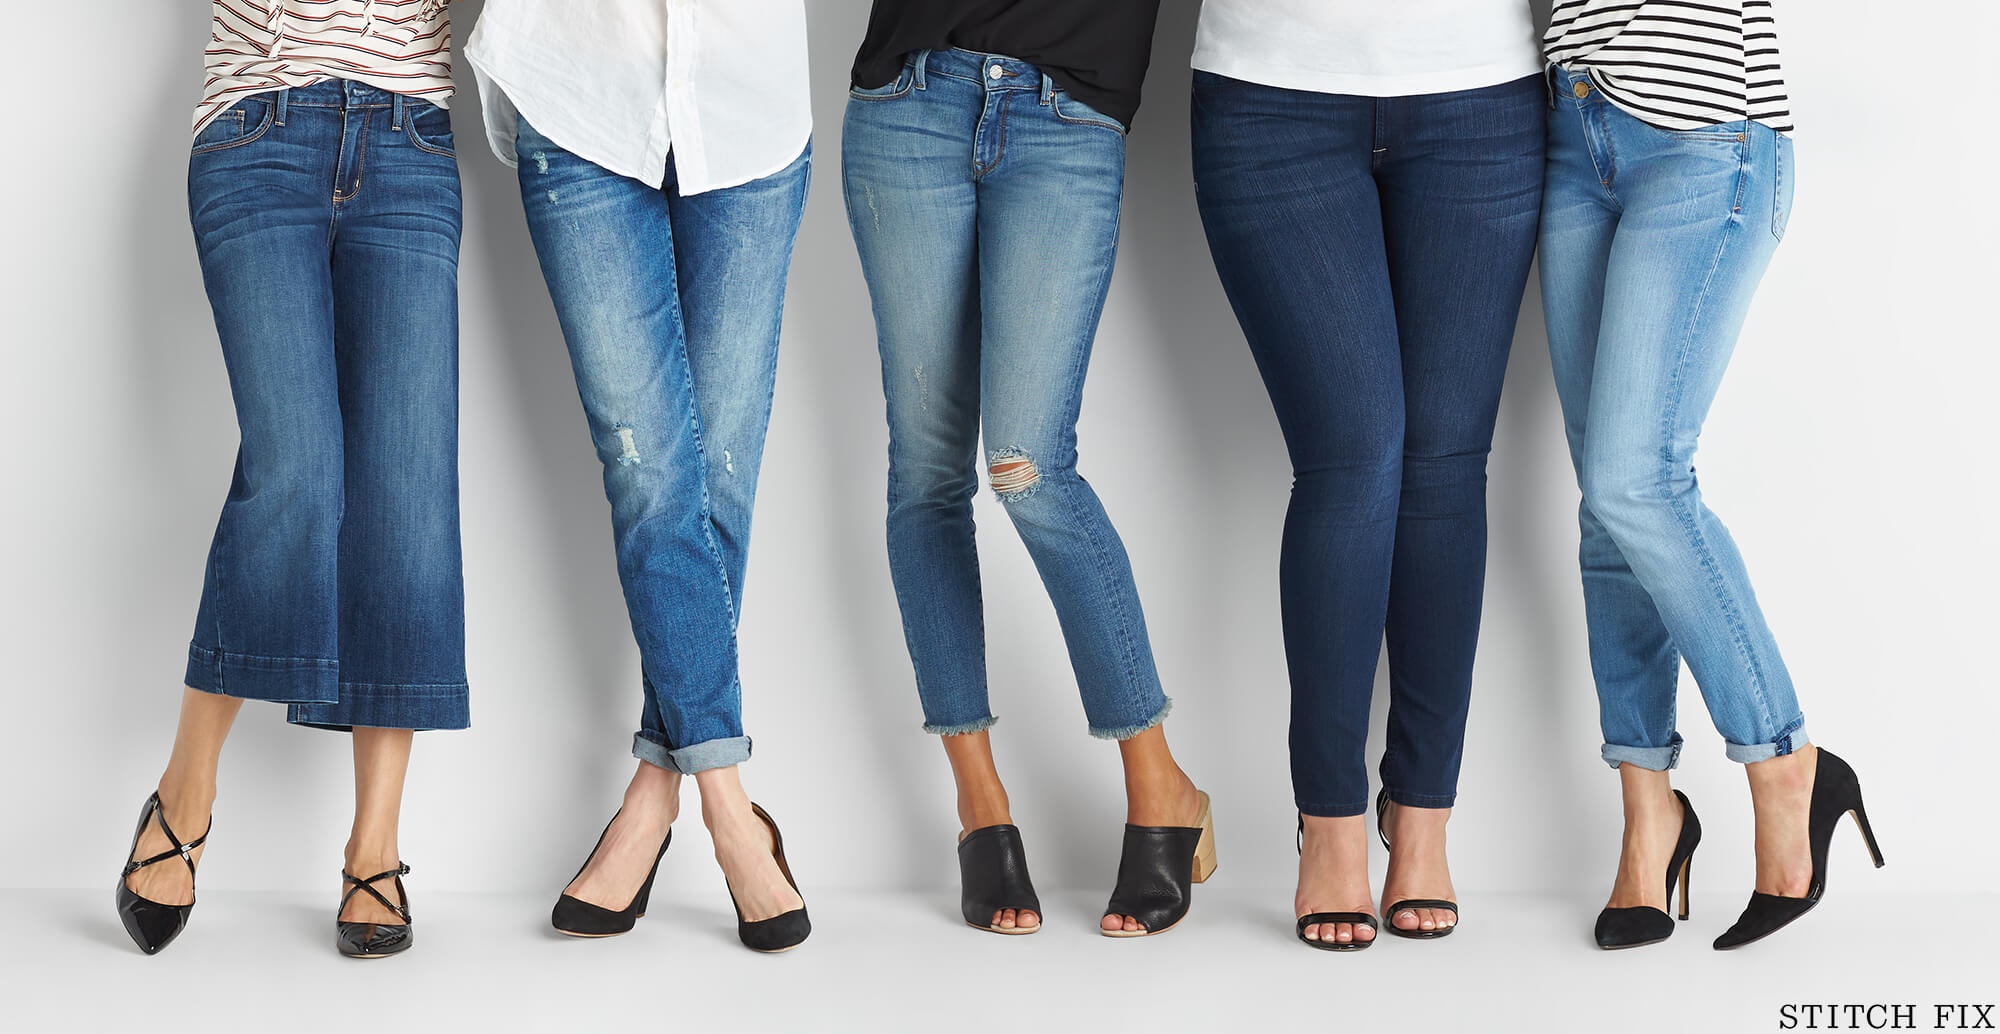 A variety of jean styles on women with different body types.